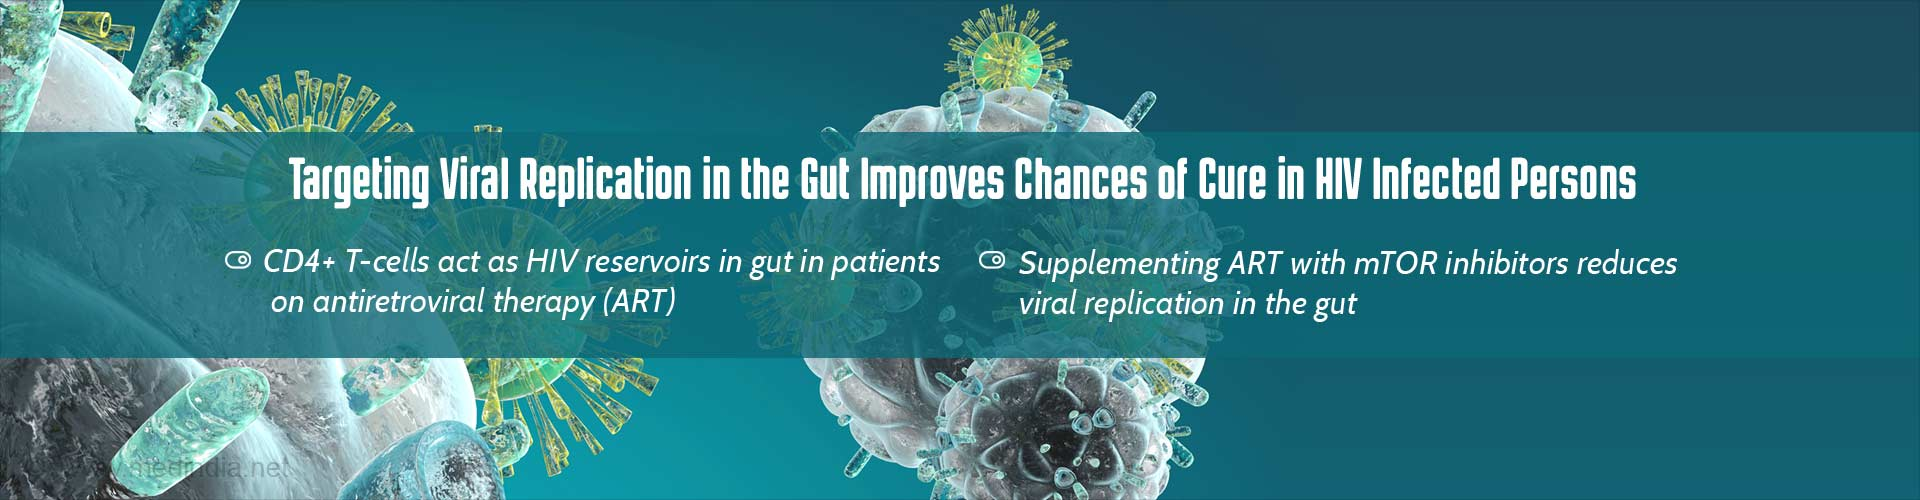 Targeting viral replication in the gut improves chances of cure in HIV infected persons